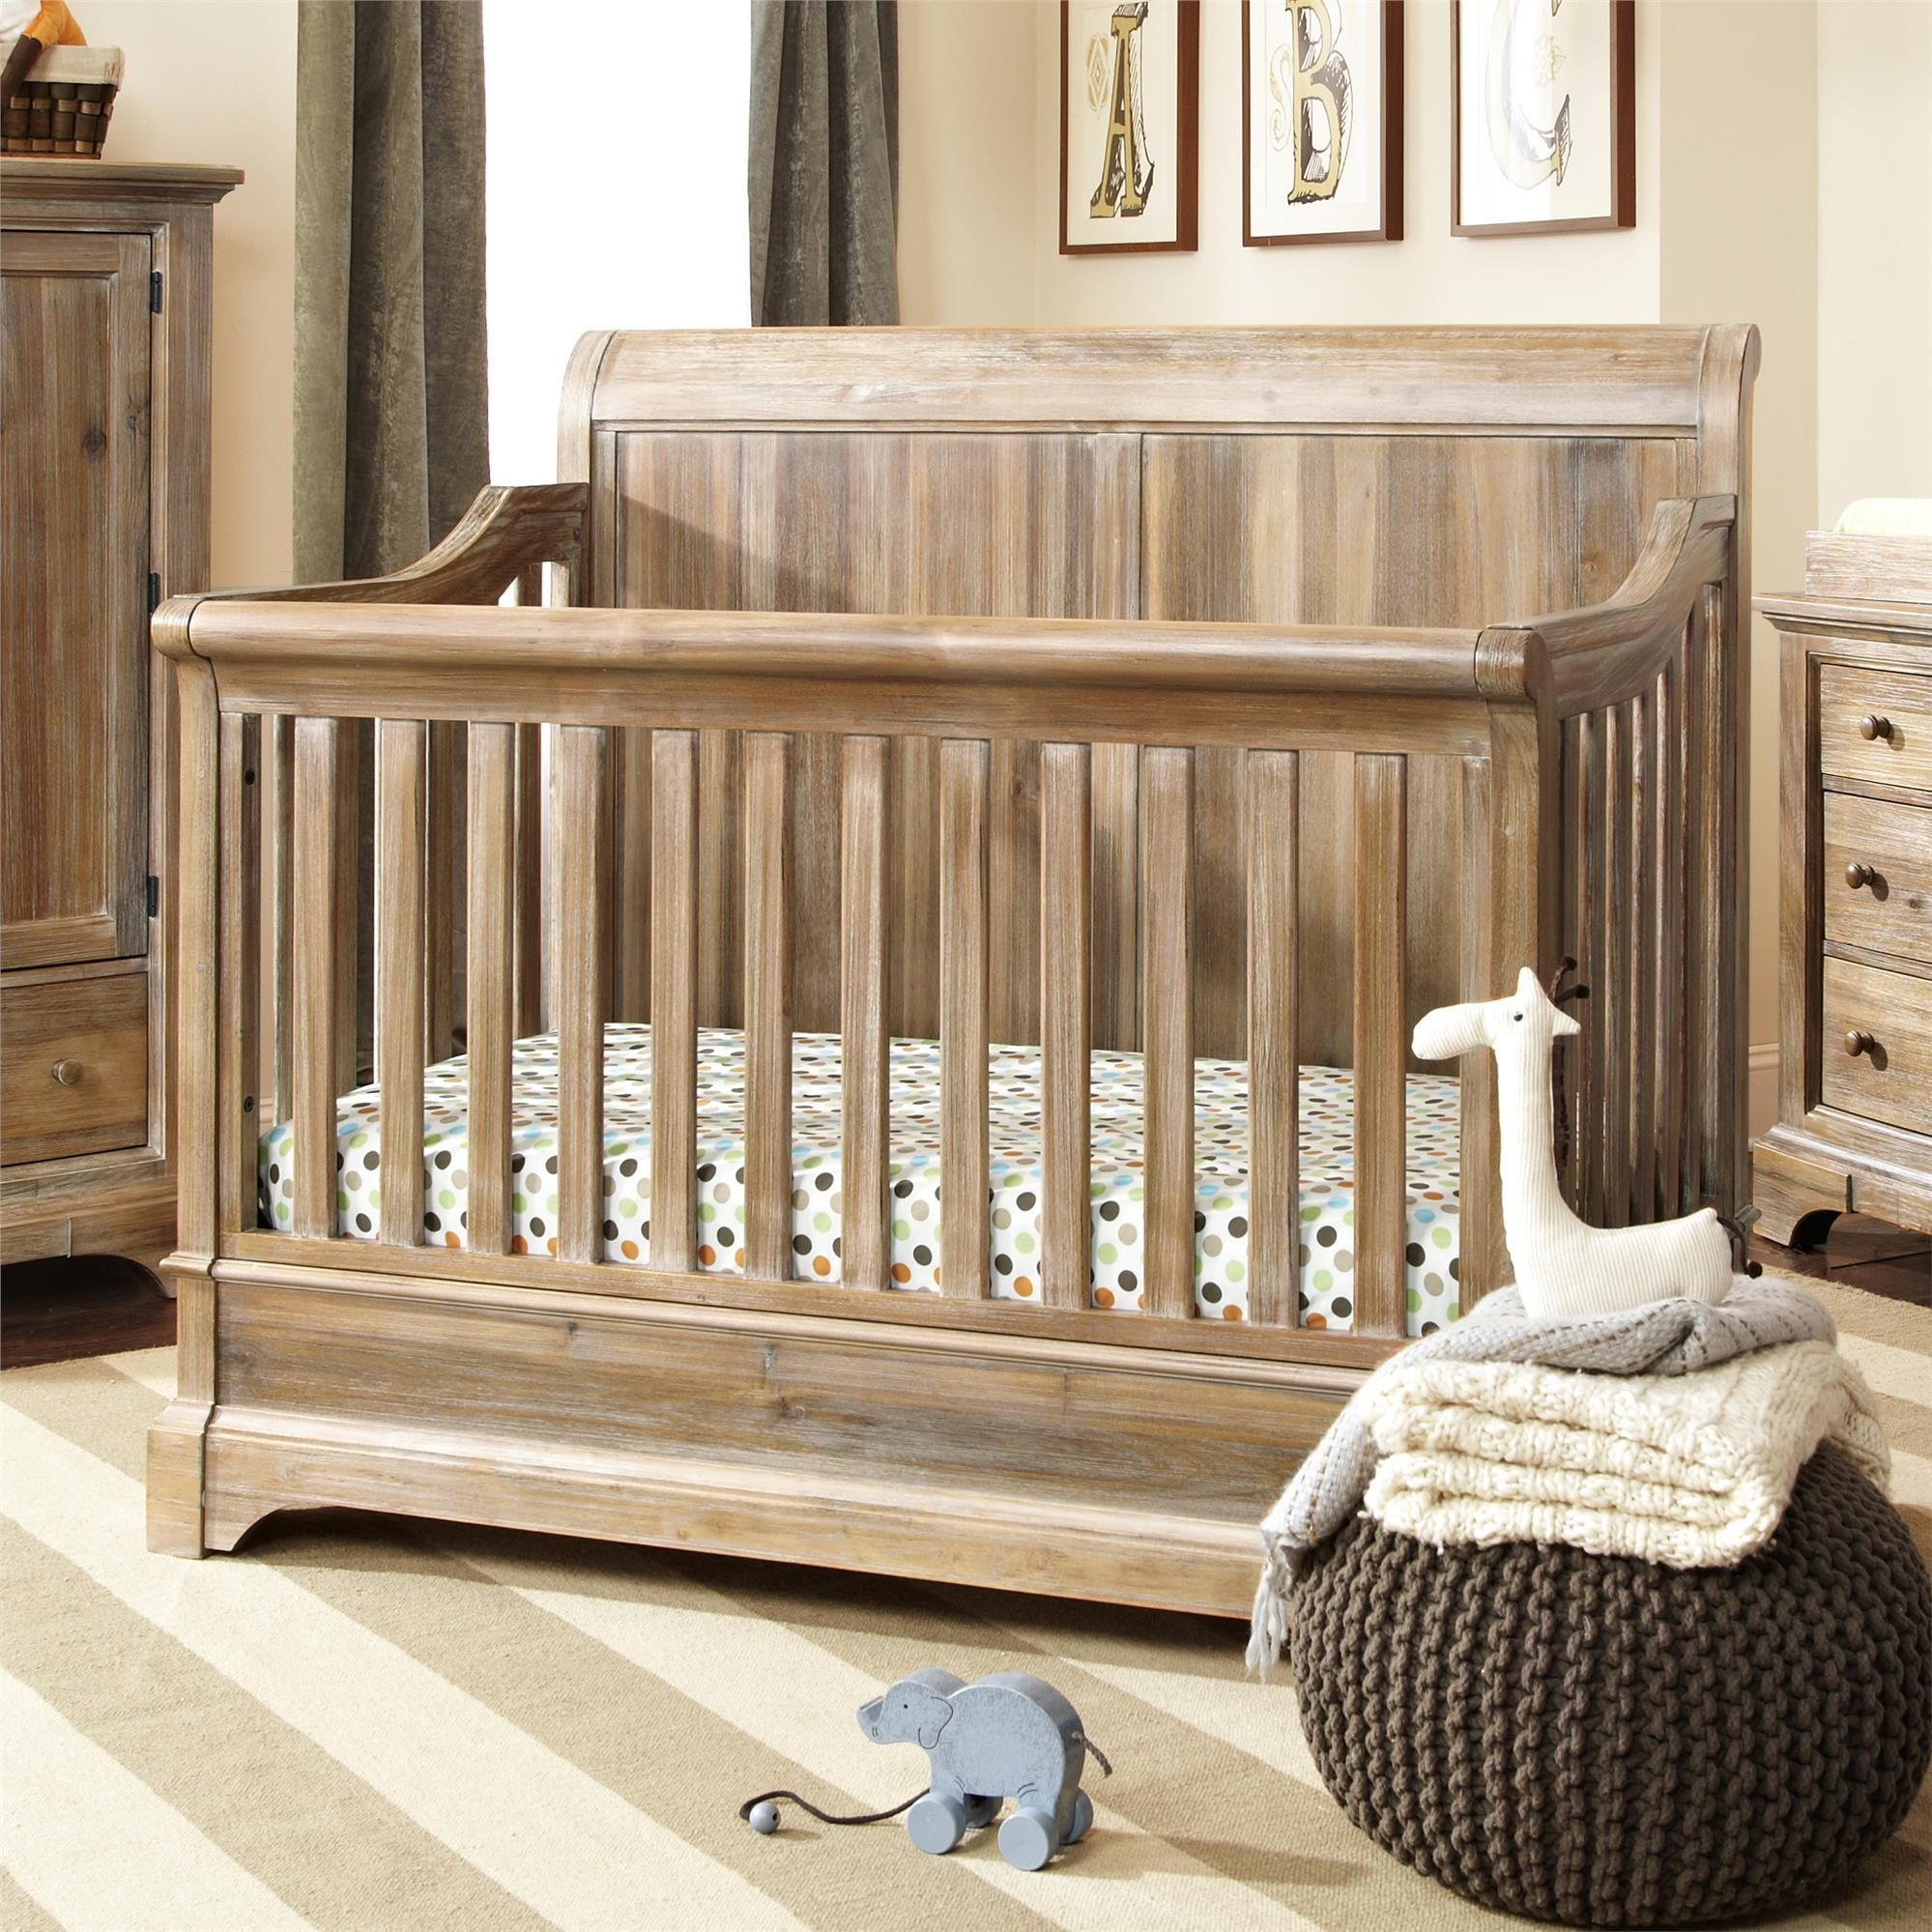 Bertini Pembrooke 4 In 1 Convertible Crib Natural Rustic Bertini Babies R Us Boy Furniture Rustic Baby Rooms Baby Furniture Sets Rustic Baby Cribs